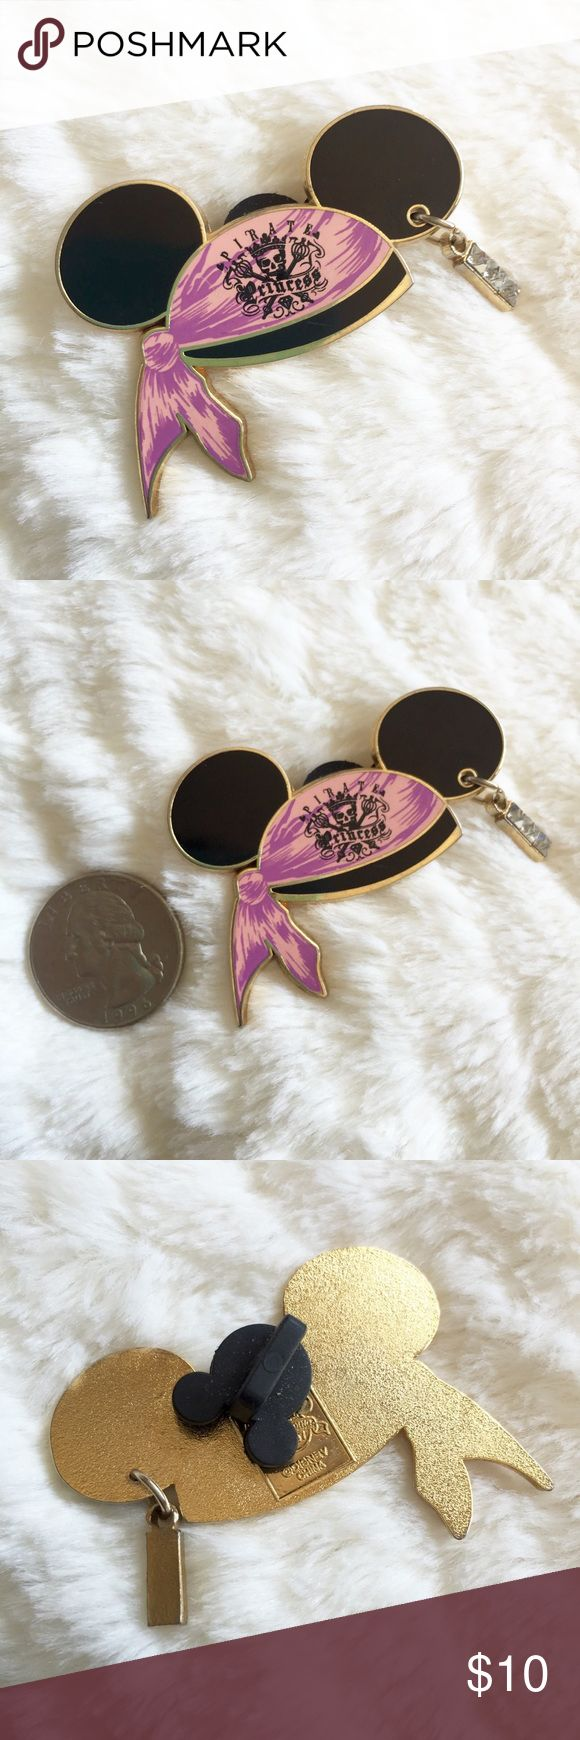 """Authentic Disney Pirates Mickey Hat Trading Pin Authentic Disney Trading Pin • From the Disneyland park • Pirates of the Caribbean themed Mickey hat with a pink bandana that says """"Pirate Princess"""" and a rhinestone ear piercing • Gold tone metal • Year 2007 Disney Accessories"""